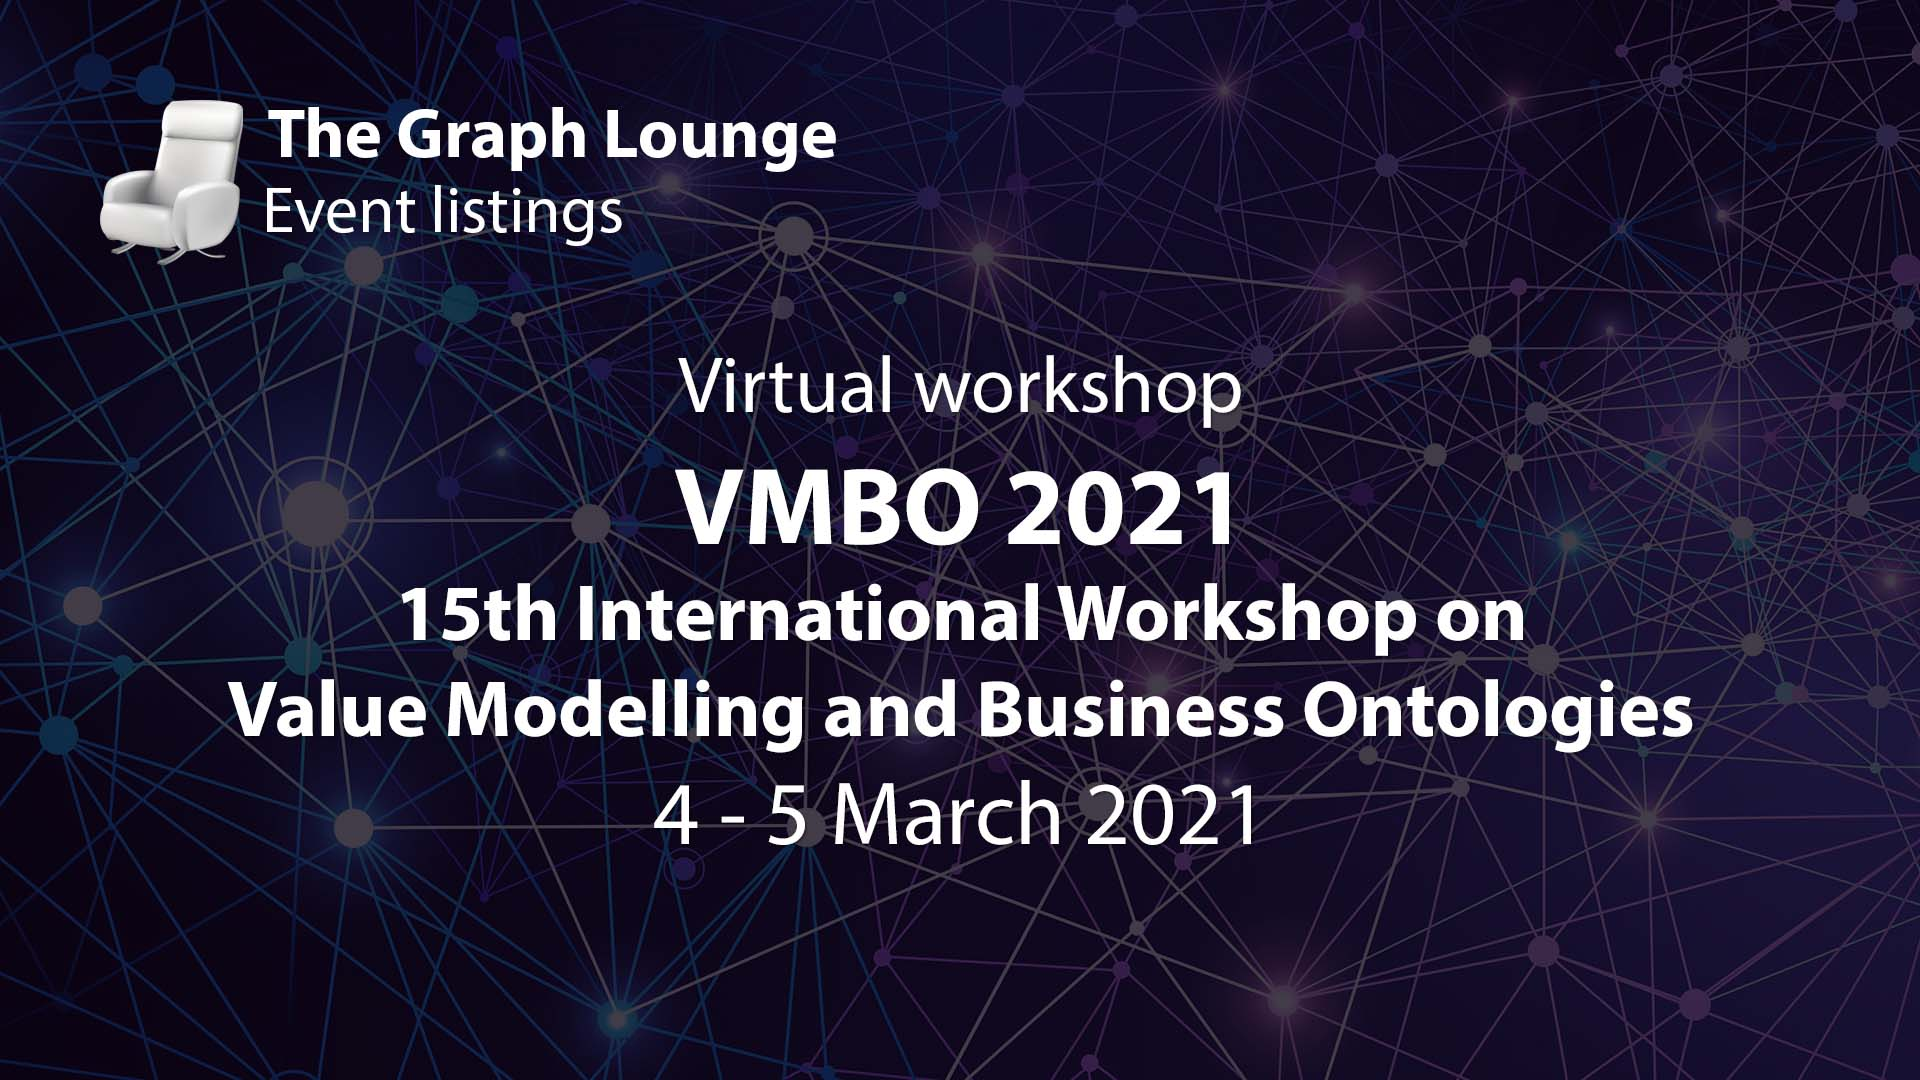 VMBO 2021 (15th International Workshop on Value Modelling and Business Ontologies)